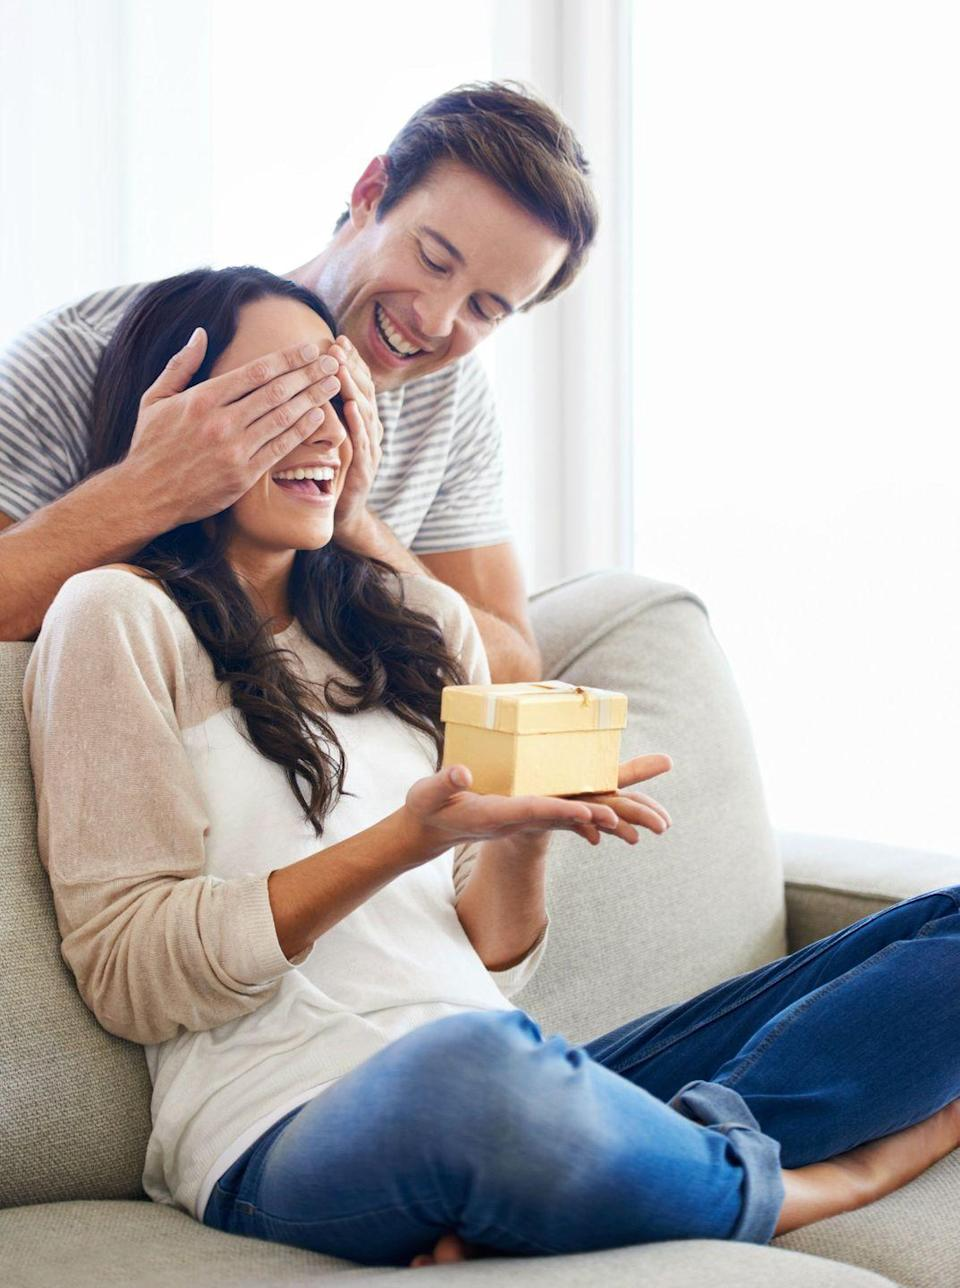 """<p>Though you may rule the household with shared Google calendars and group text messages, if your husband still makes an effort to surprise you with things he knows will brighten your day, then he still loves you lots, Weaver says. </p><p>""""This isn't about expensive gifts. Oftentimes it's something as simple as bringing home a favorite candy or carton of ice cream, or picking up tickets when you mentioned you wanted to see a certain movie,"""" she says. The point is that he's thinking of ways to keep your relationship <a href=""""https://www.womansday.com/relationships/dating-marriage/g3214/25-things-every-marriage-needs/"""" rel=""""nofollow noopener"""" target=""""_blank"""" data-ylk=""""slk:fresh and fun"""" class=""""link rapid-noclick-resp"""">fresh and fun</a>, and showing you that he still remembers the little things that make you smile. </p>"""